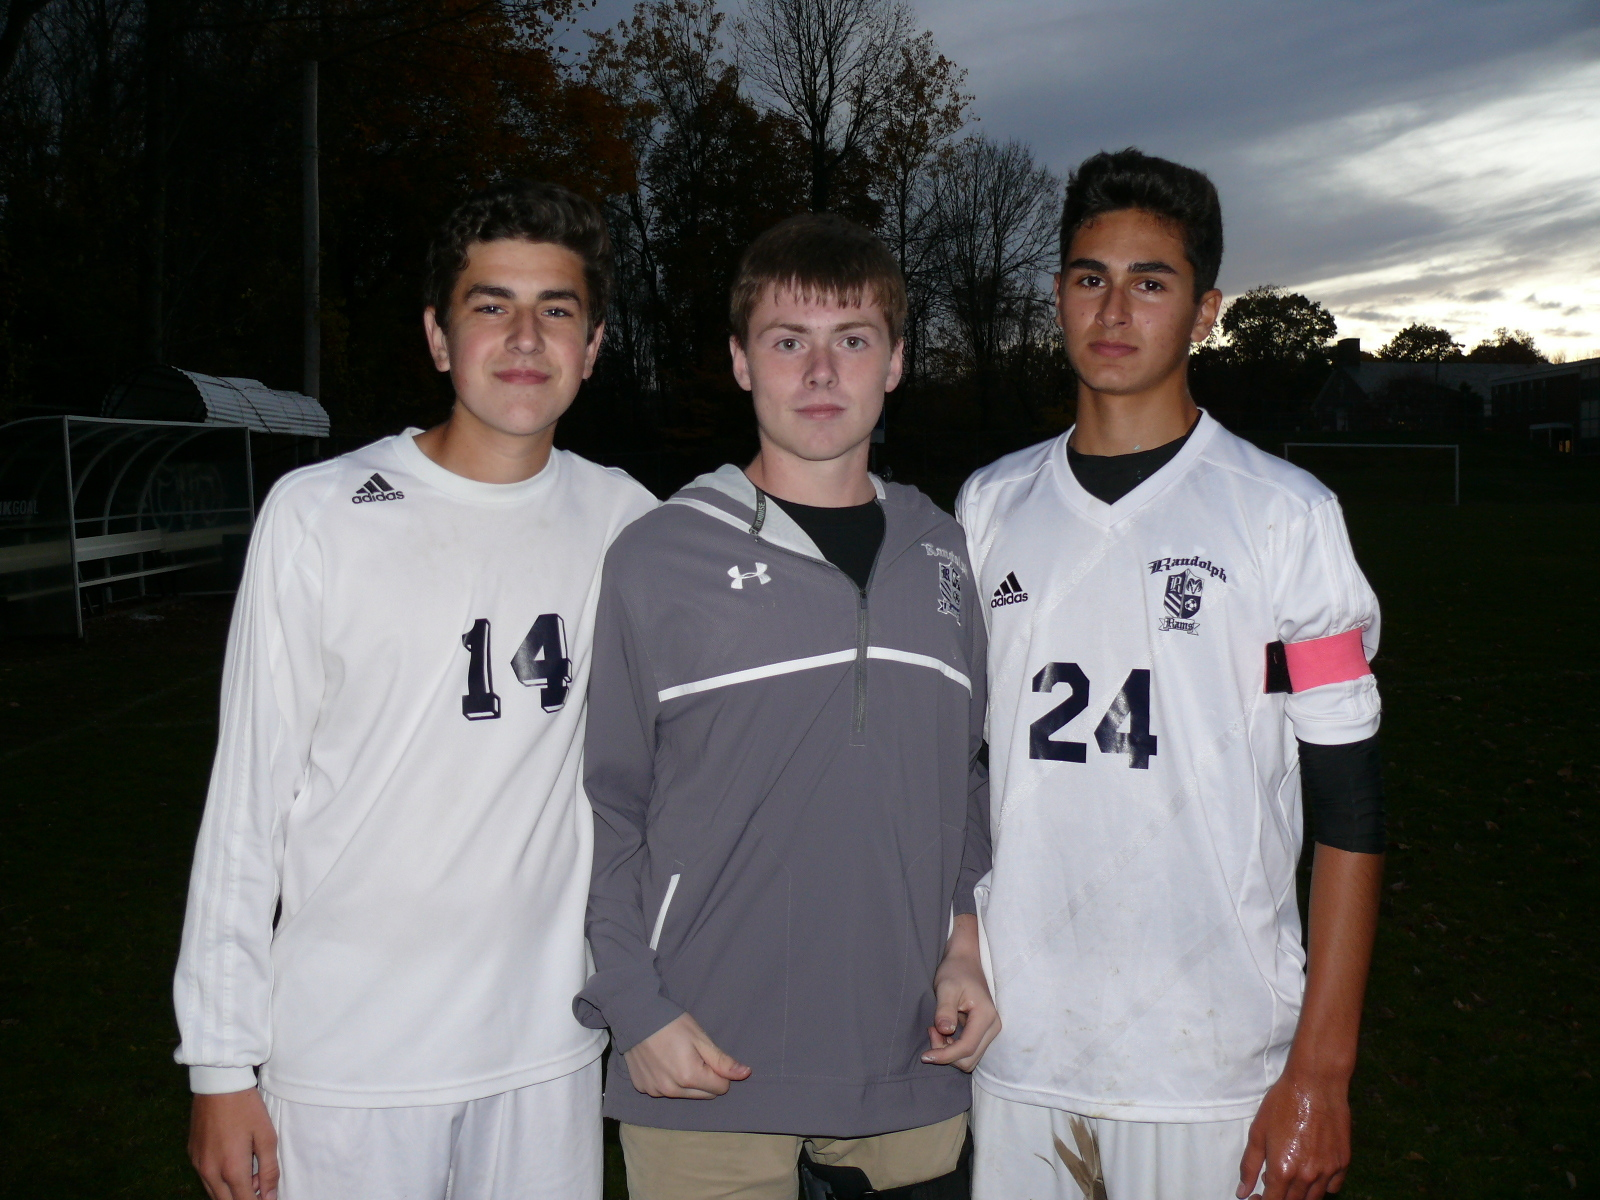 afbb3a48ebccd5dbce98_RHS_JV_Soccer_Captains_Jack_Zimmerman__Justin_Lawrence__and_Kyle_Maietta.JPG